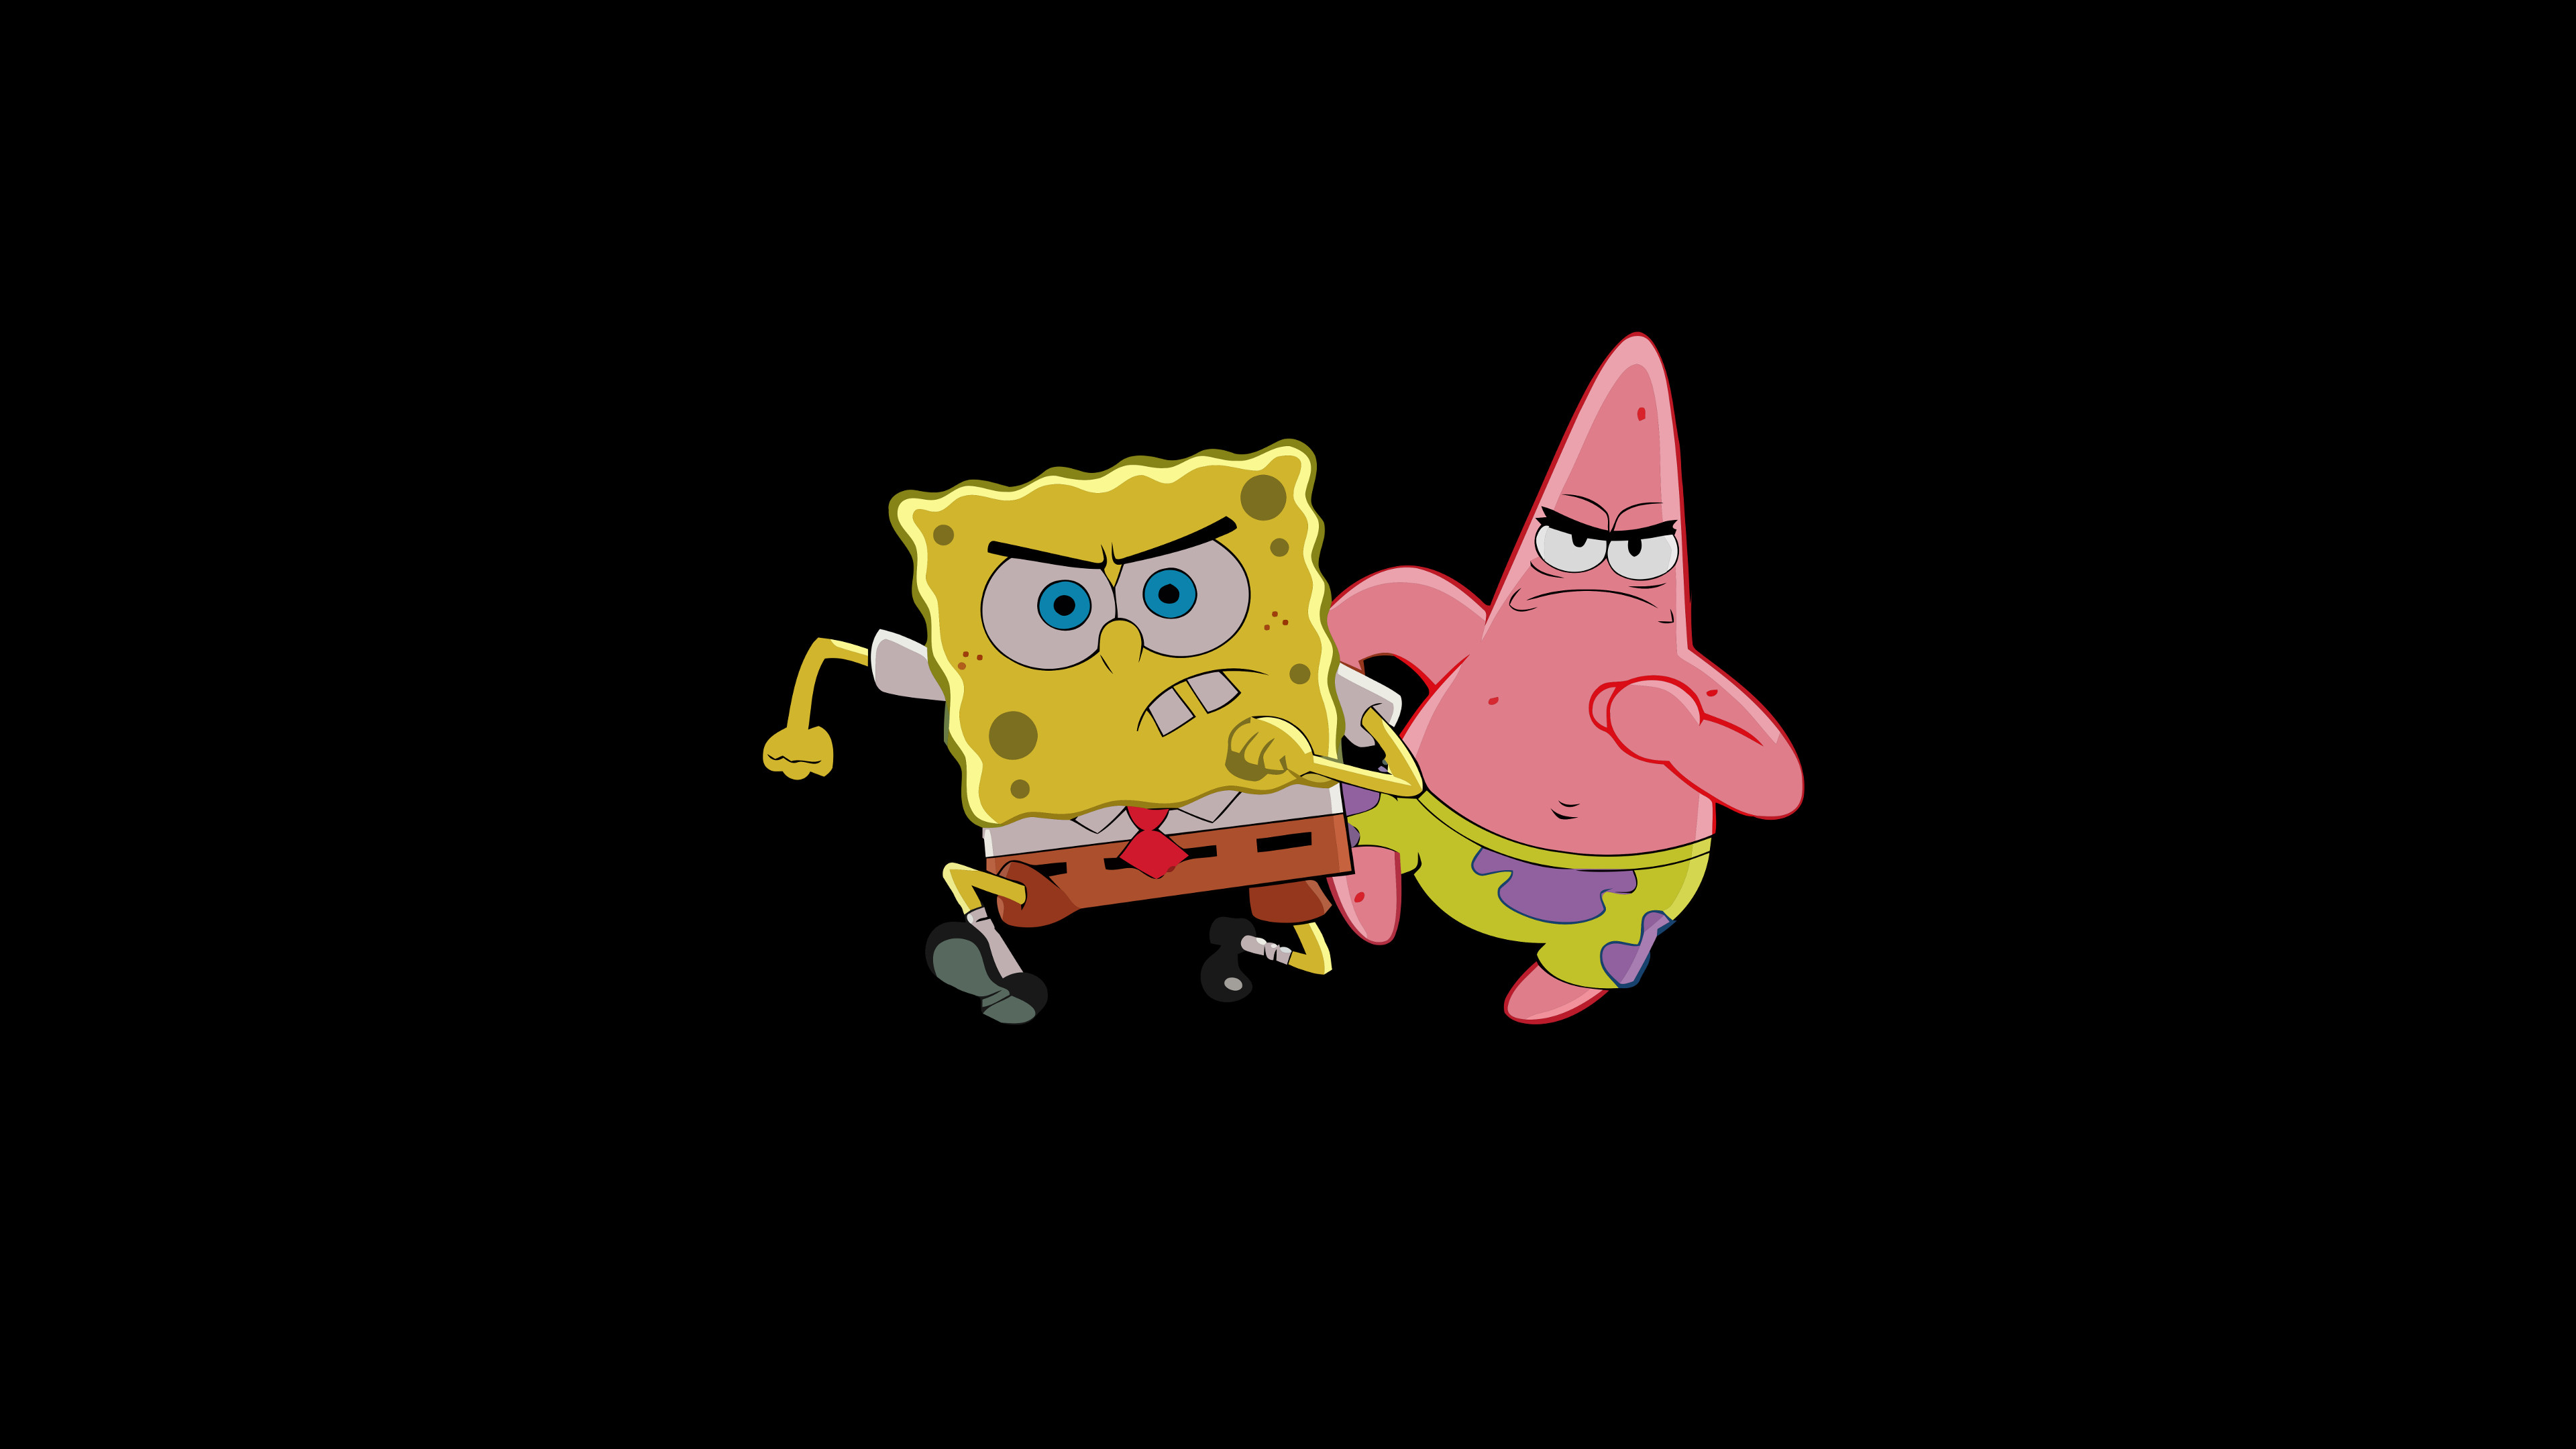 3840x2160 General  simple simple background black background SpongeBob  SquarePants Patrick Star